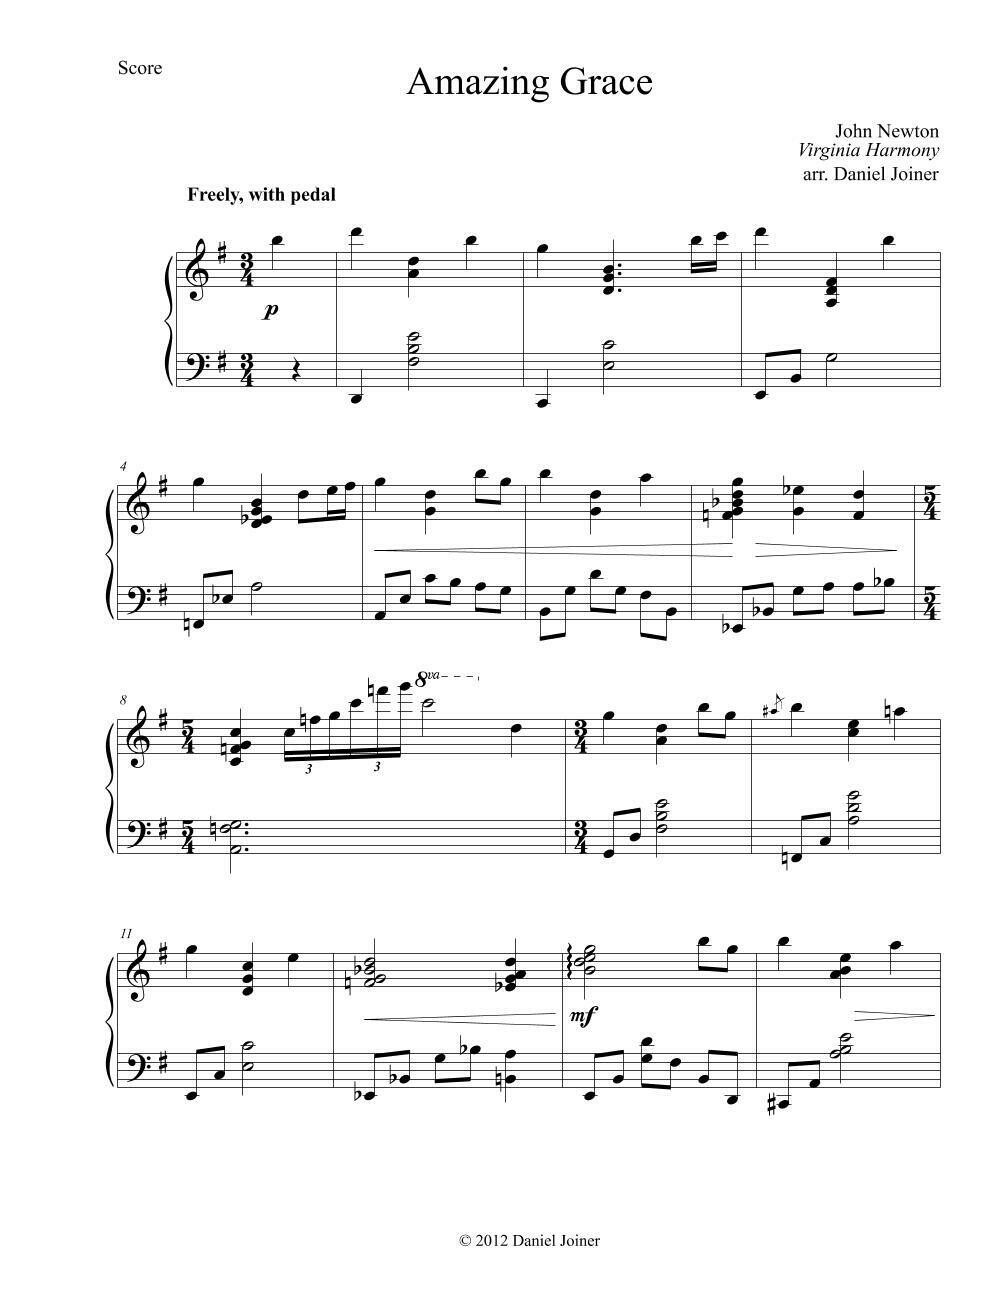 Amazing Grace- Sheet Music Arrangement